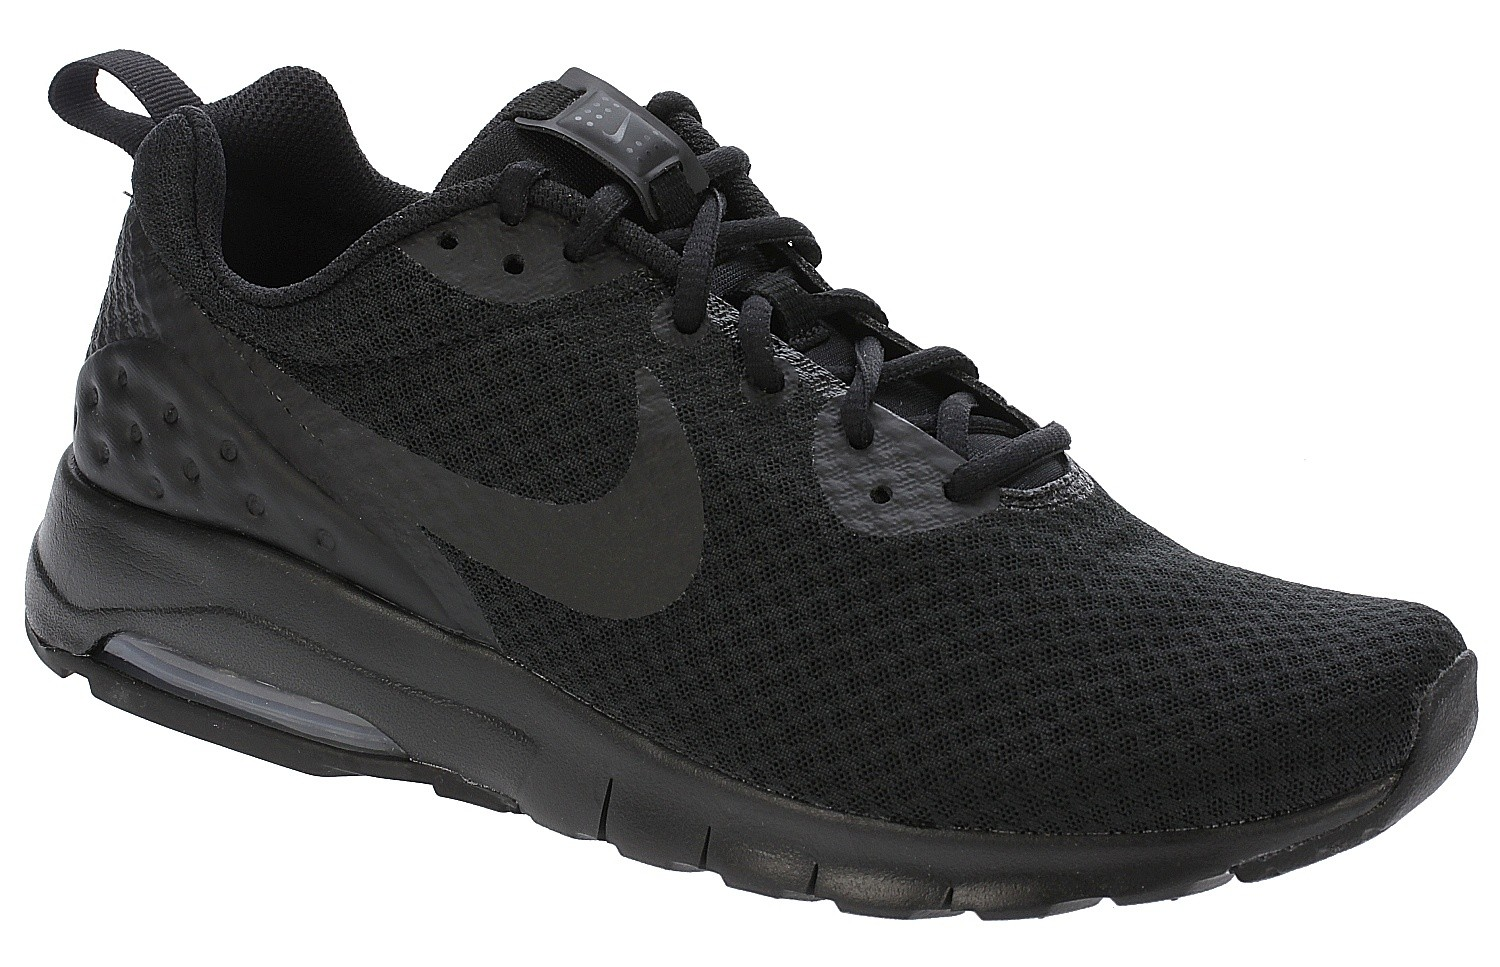 shoes Nike Air Max Motion LW - Black/Black/Anthracite